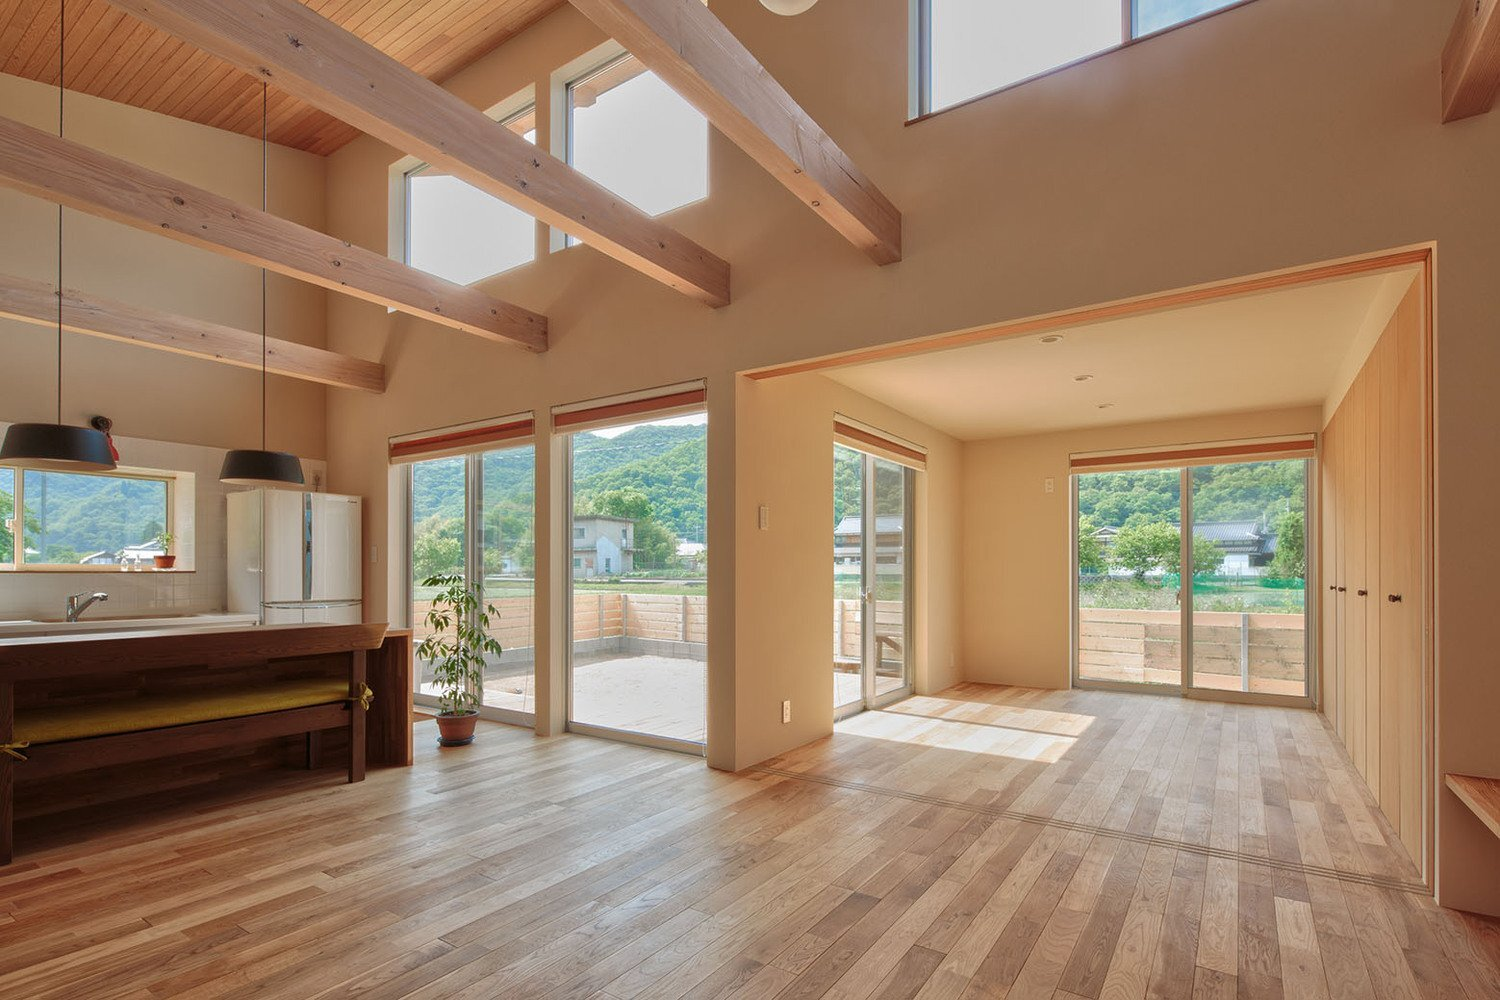 House in Yoshinaga - Tomoyuki Uchida - Japan - Living Areas 1 - Humble Homes